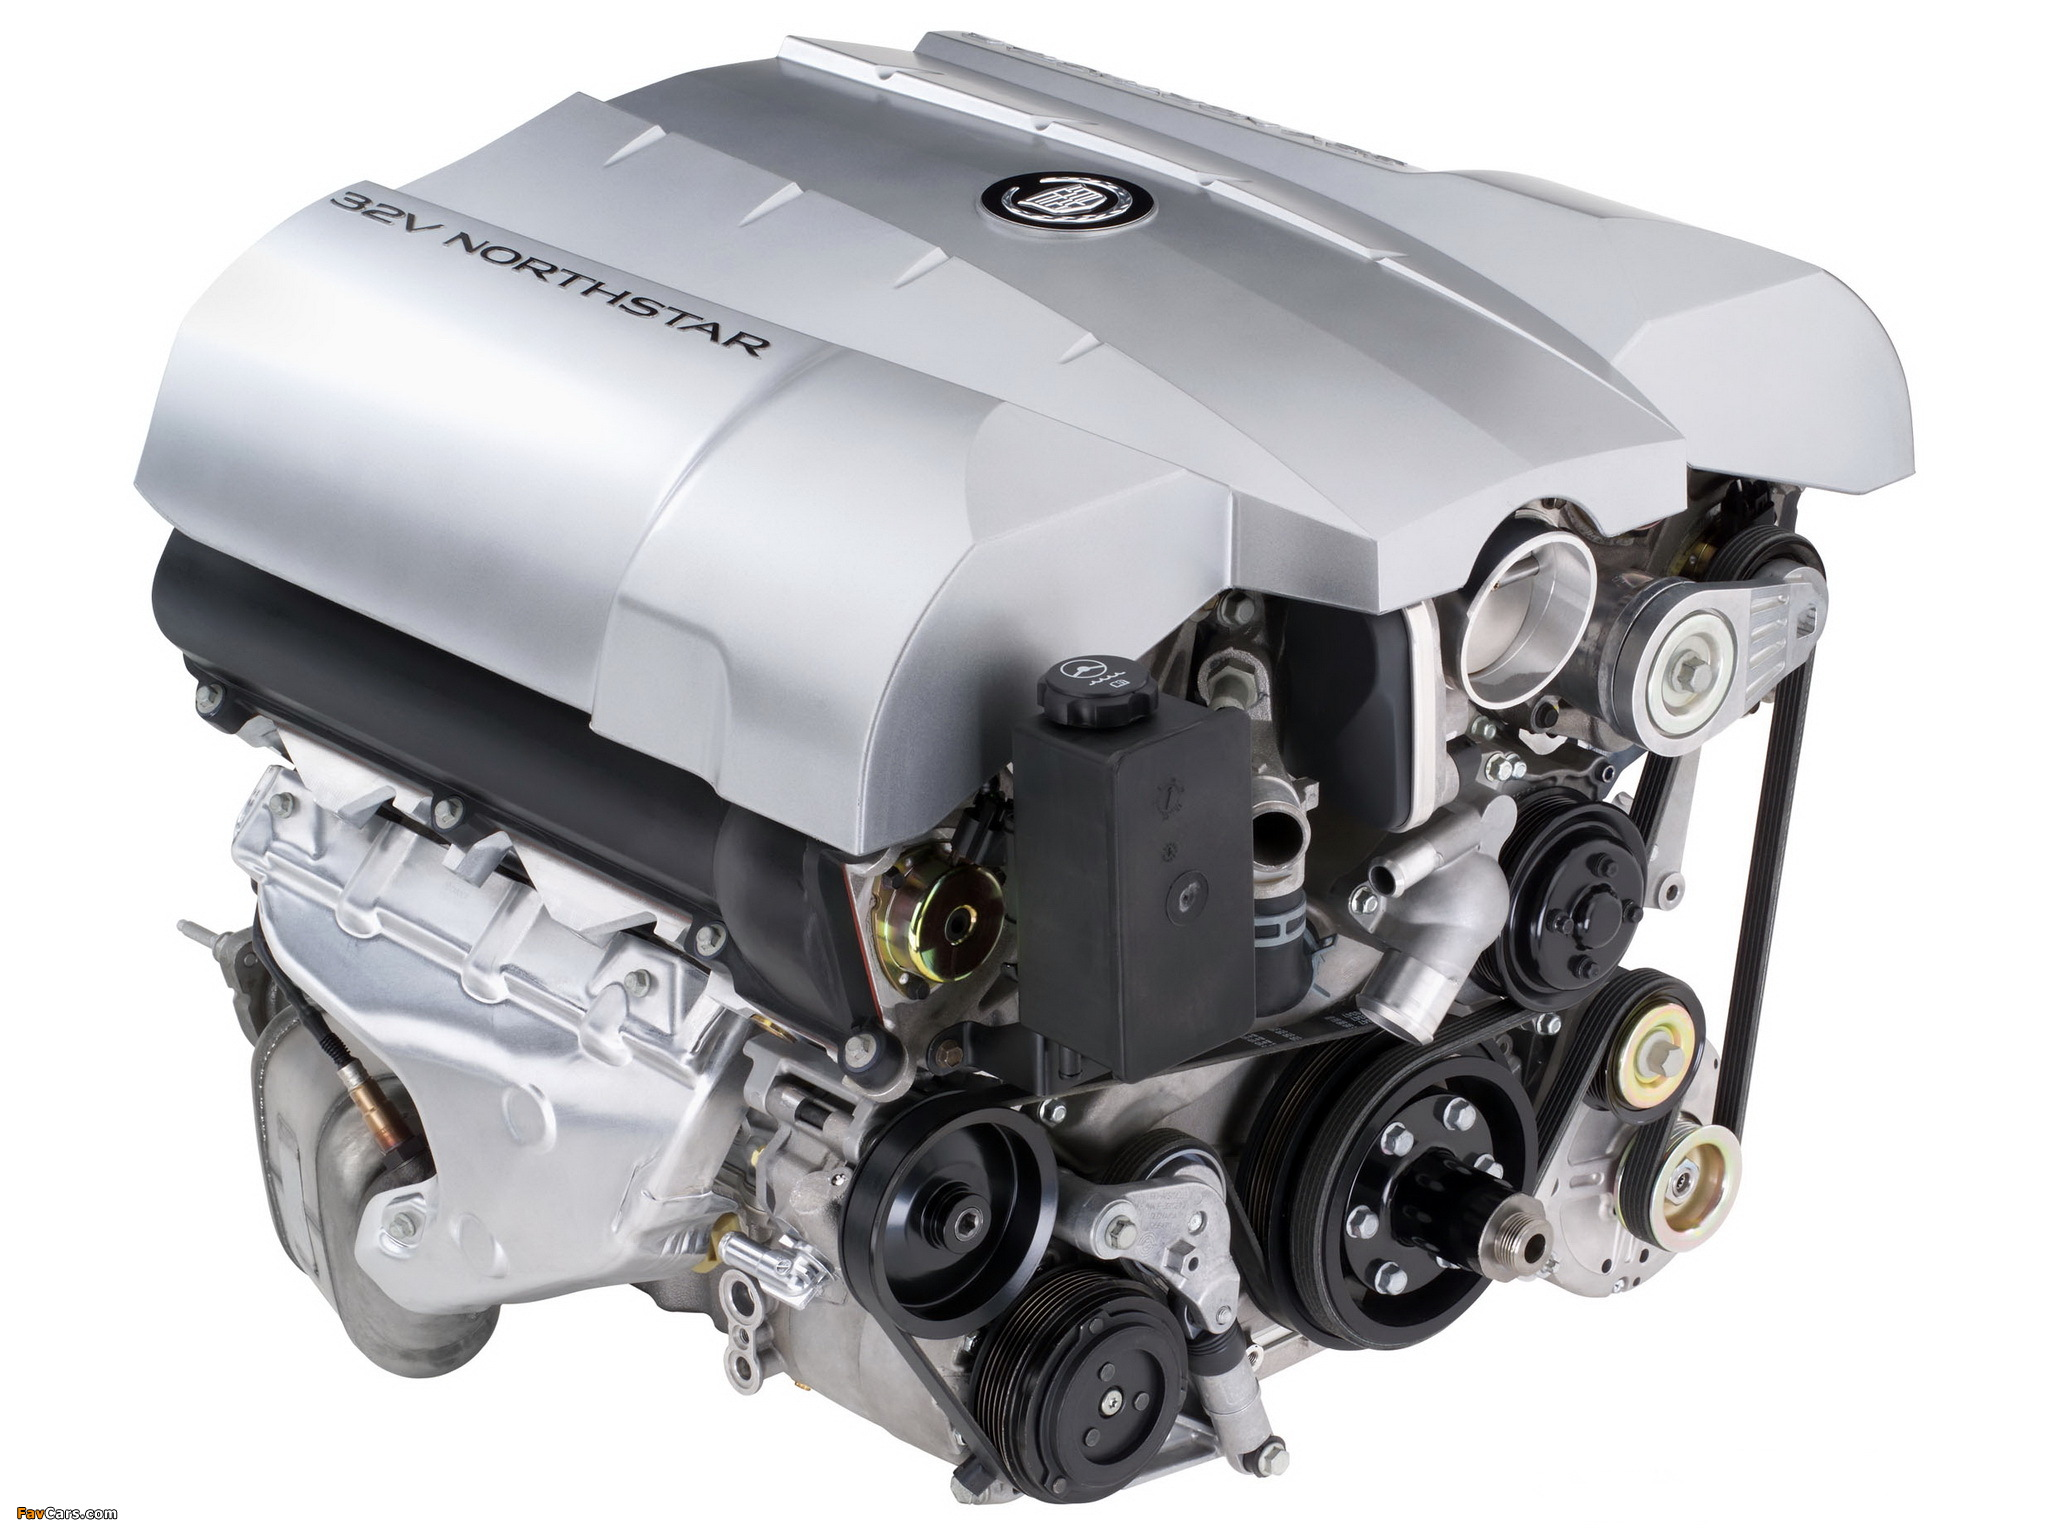 rating awd trend reviews en luxury cars and motor engine suv escalade canada cadillac engines